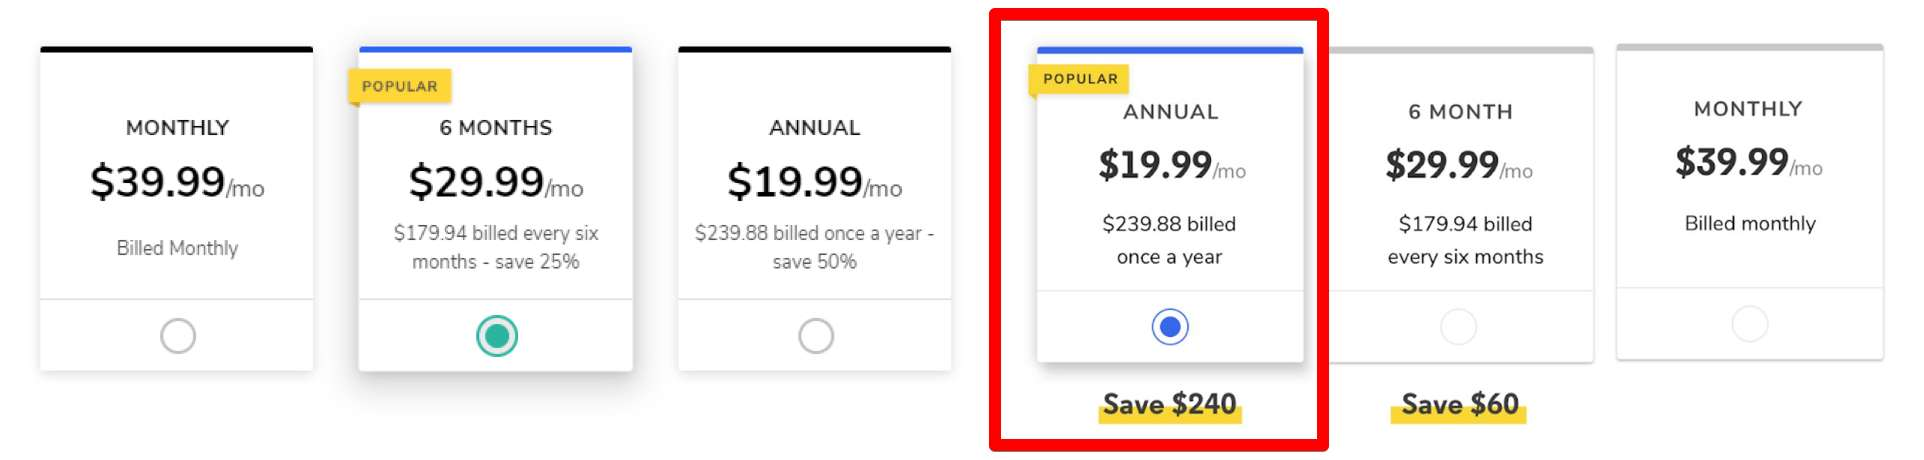 Showing the savings of the yearly plan in dollar amount – not percentage | 28.00%